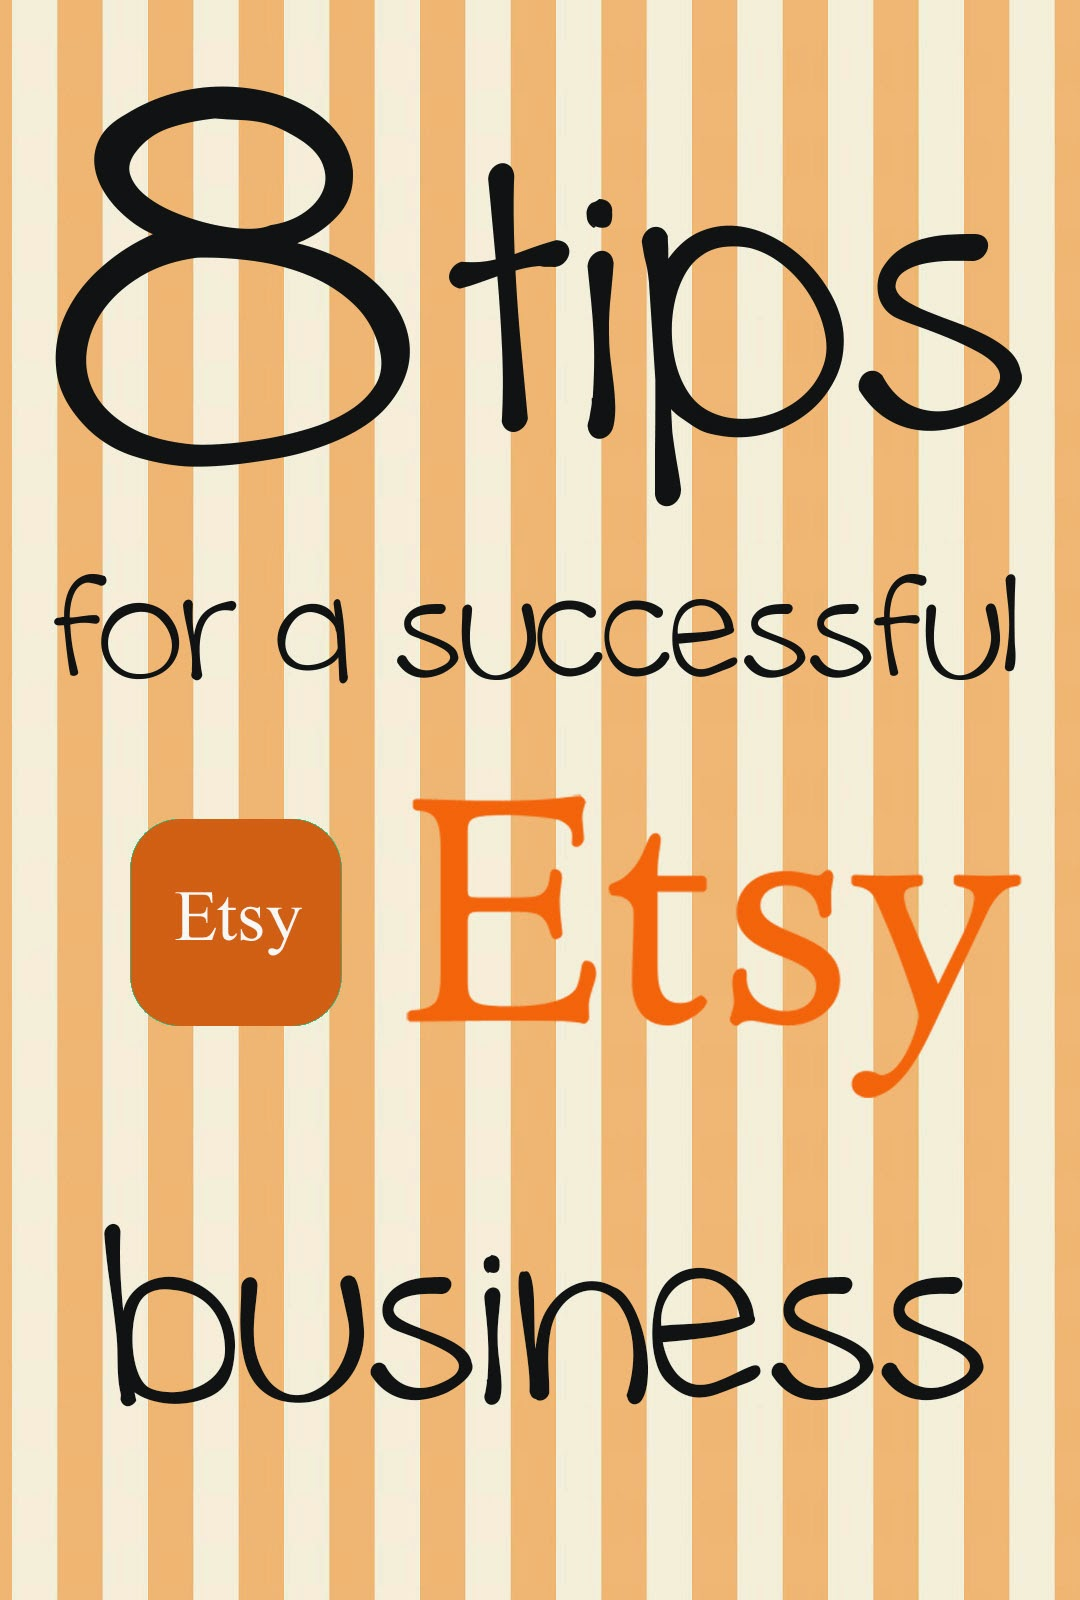 how to start a successful etsy business